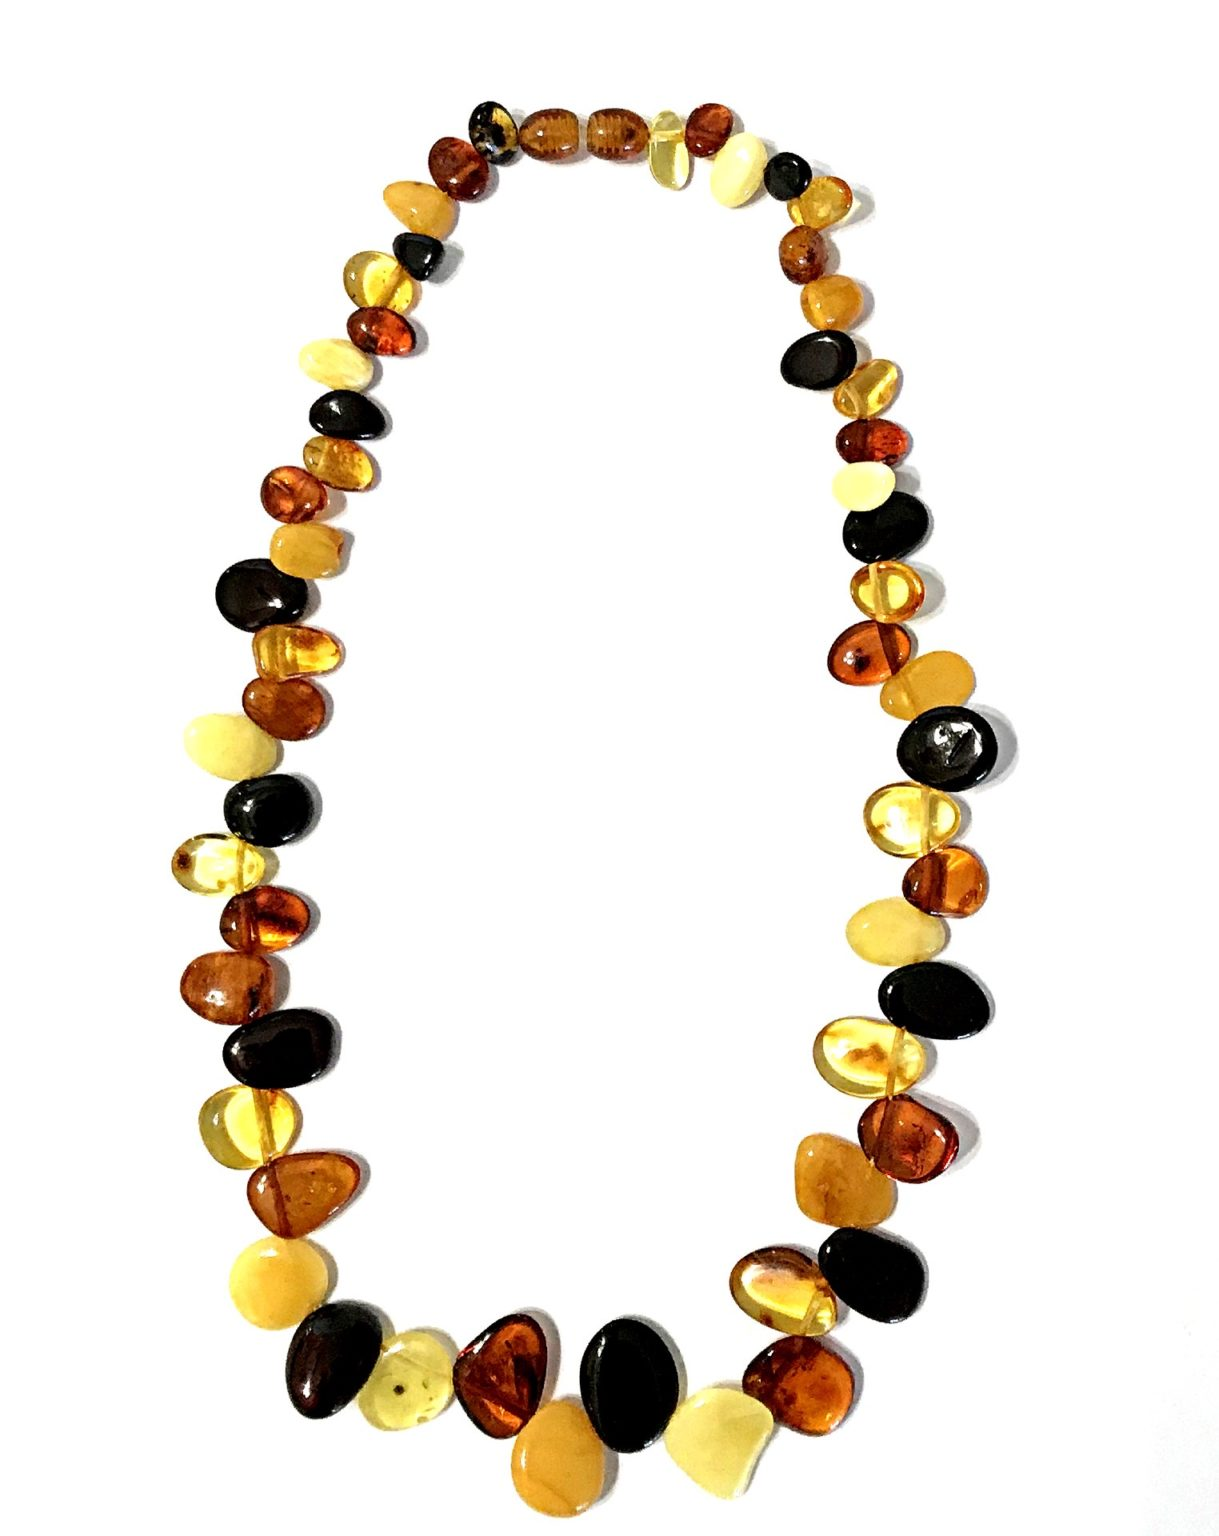 Genuine Baltic Amber Necklace. Amber jewelry.